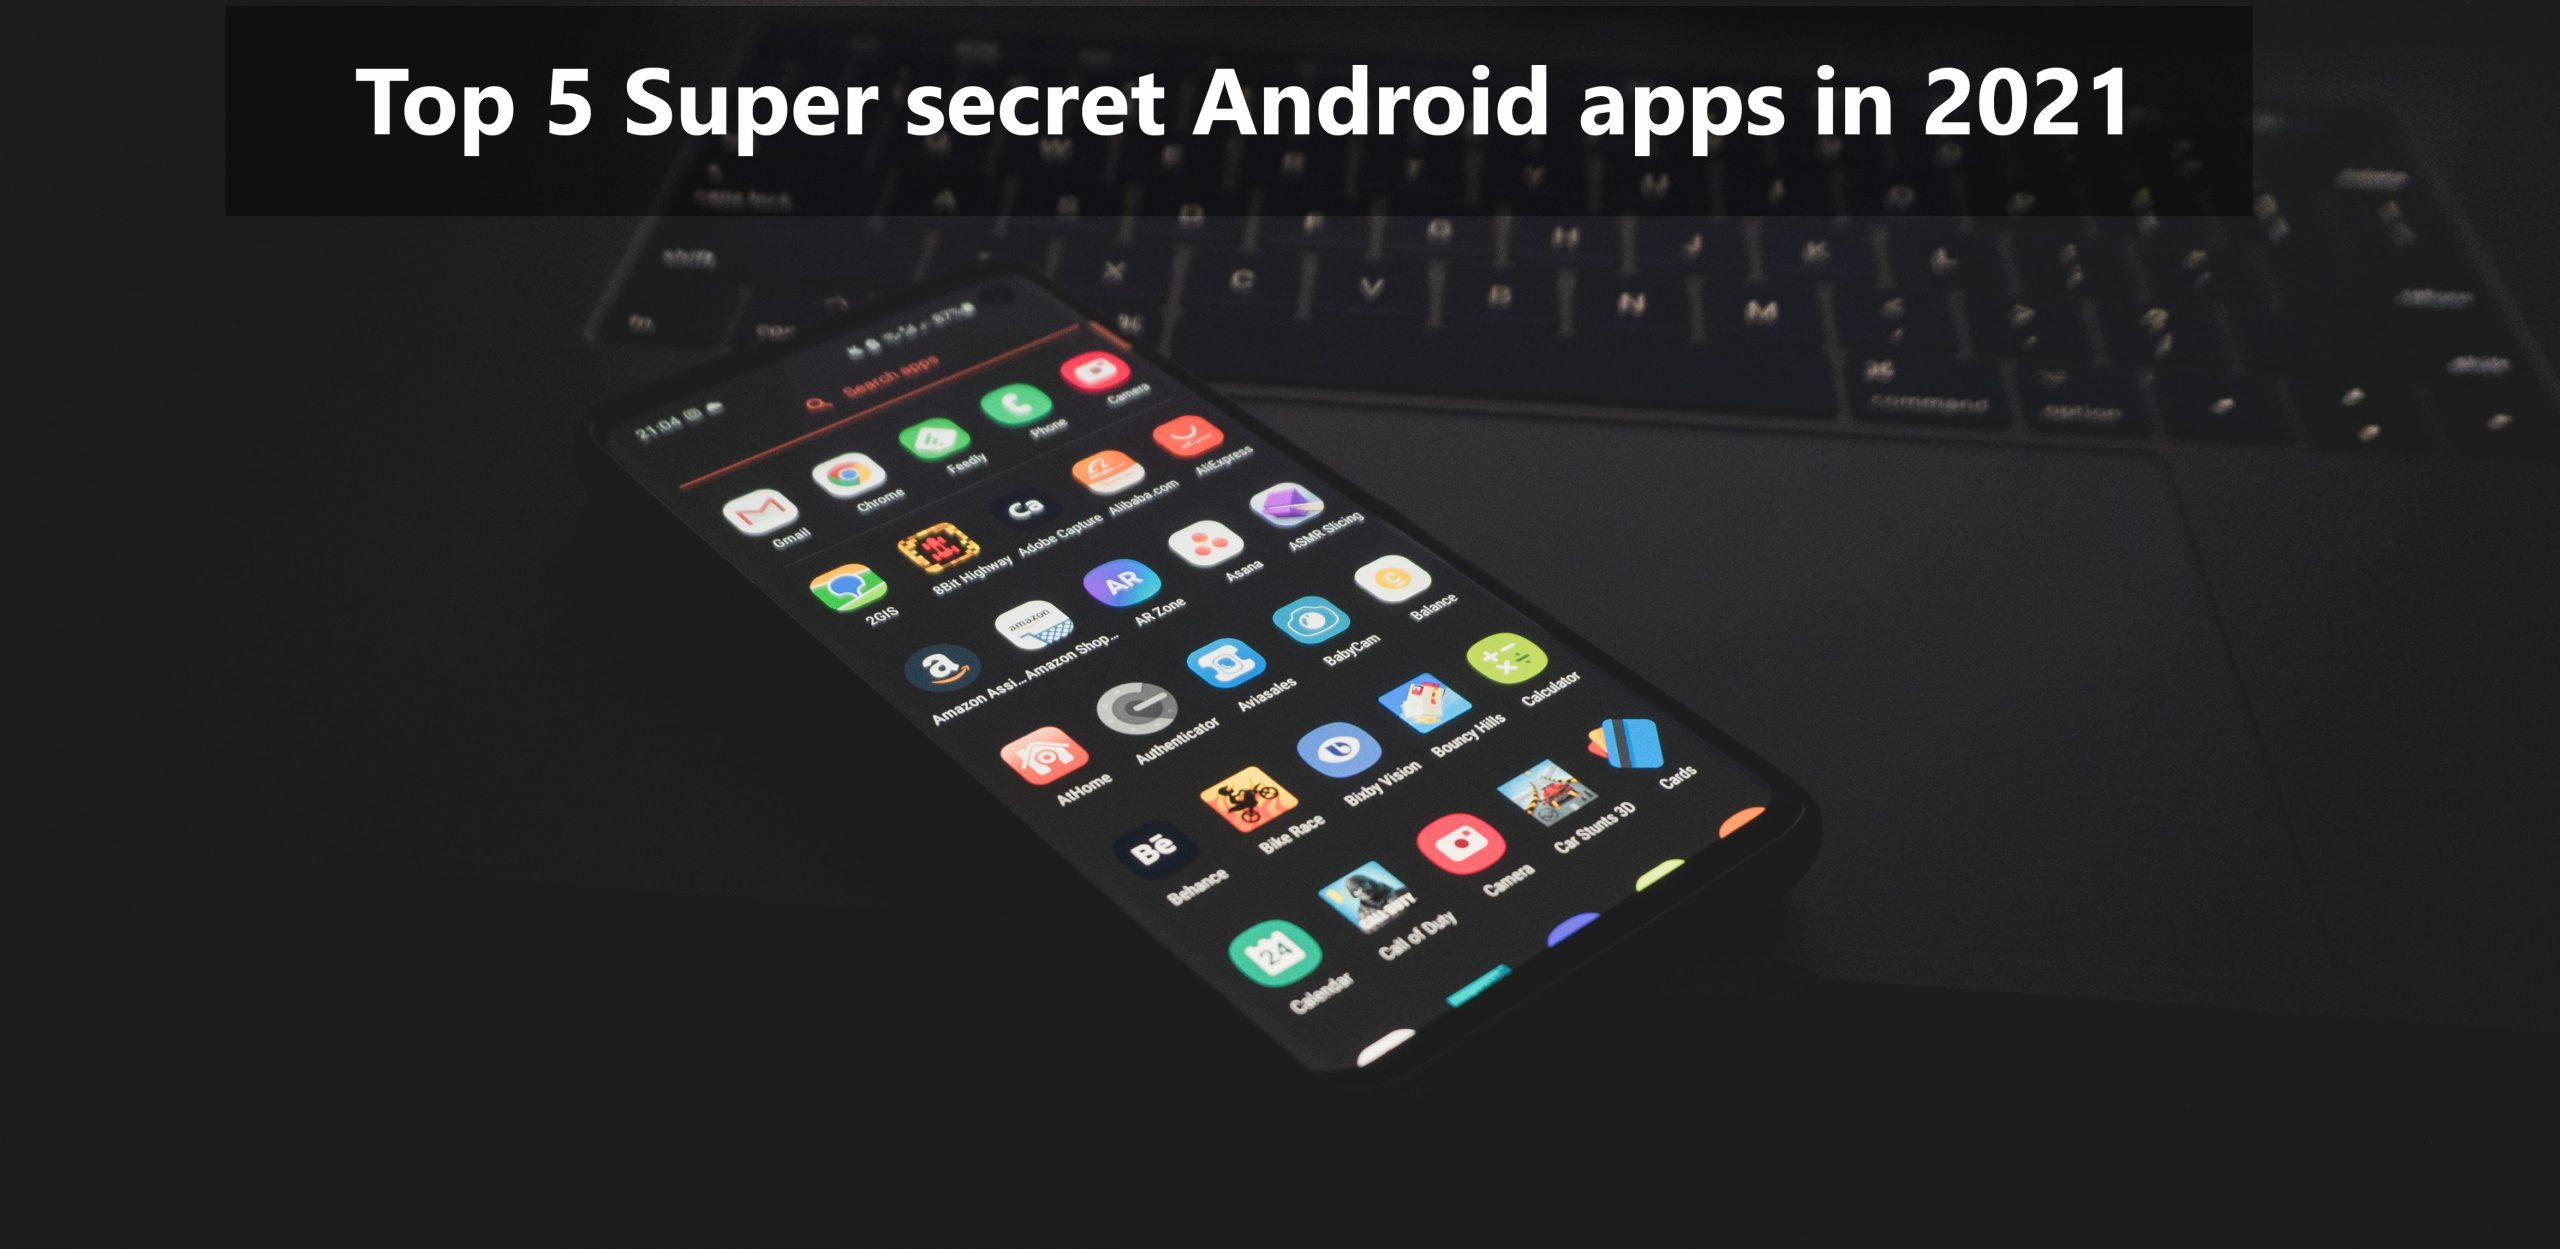 Top 5 Super secret Android apps in 2021